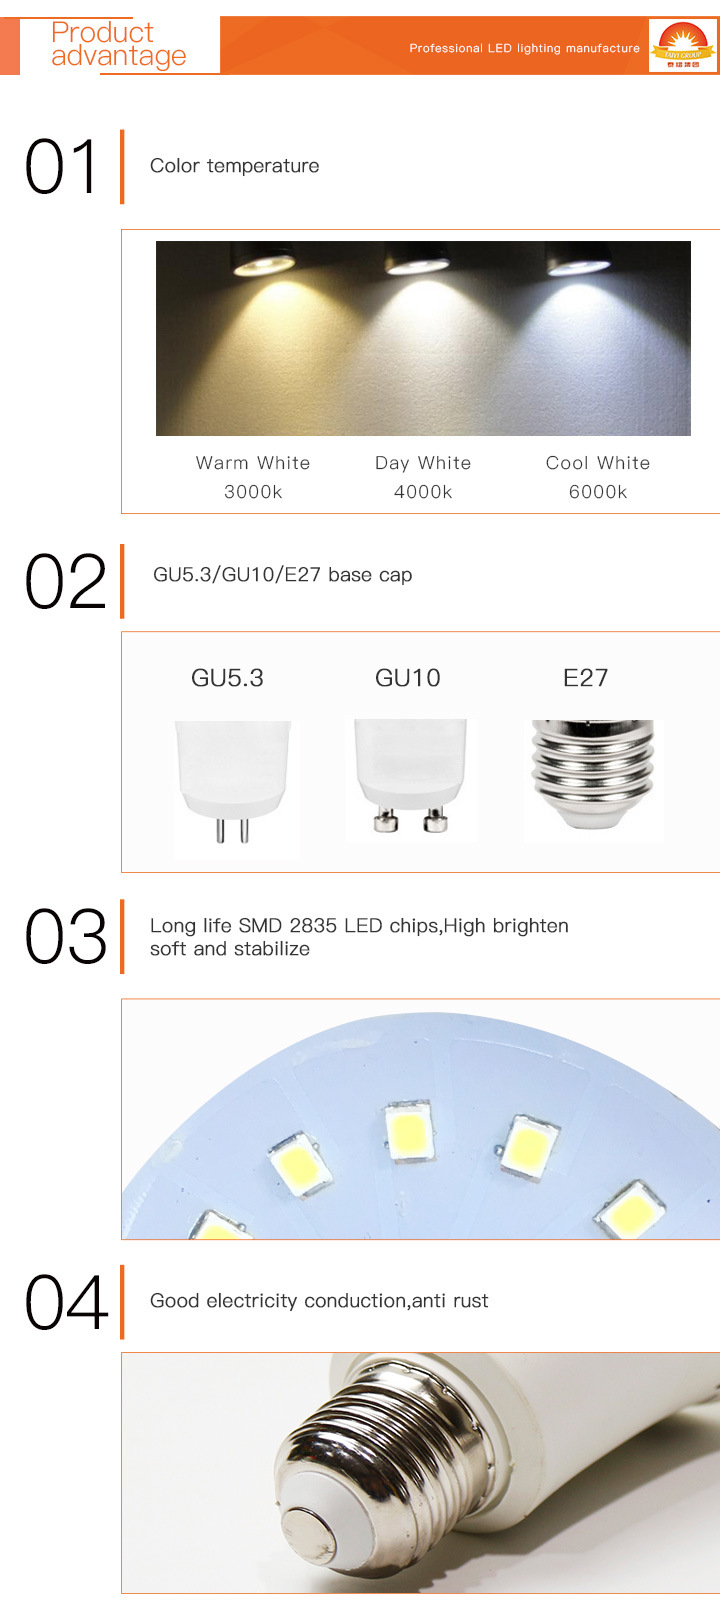 Hot Sale LED Spotlight MR16 Gu5.3 with Lens LED Lighting 2700K-7500K